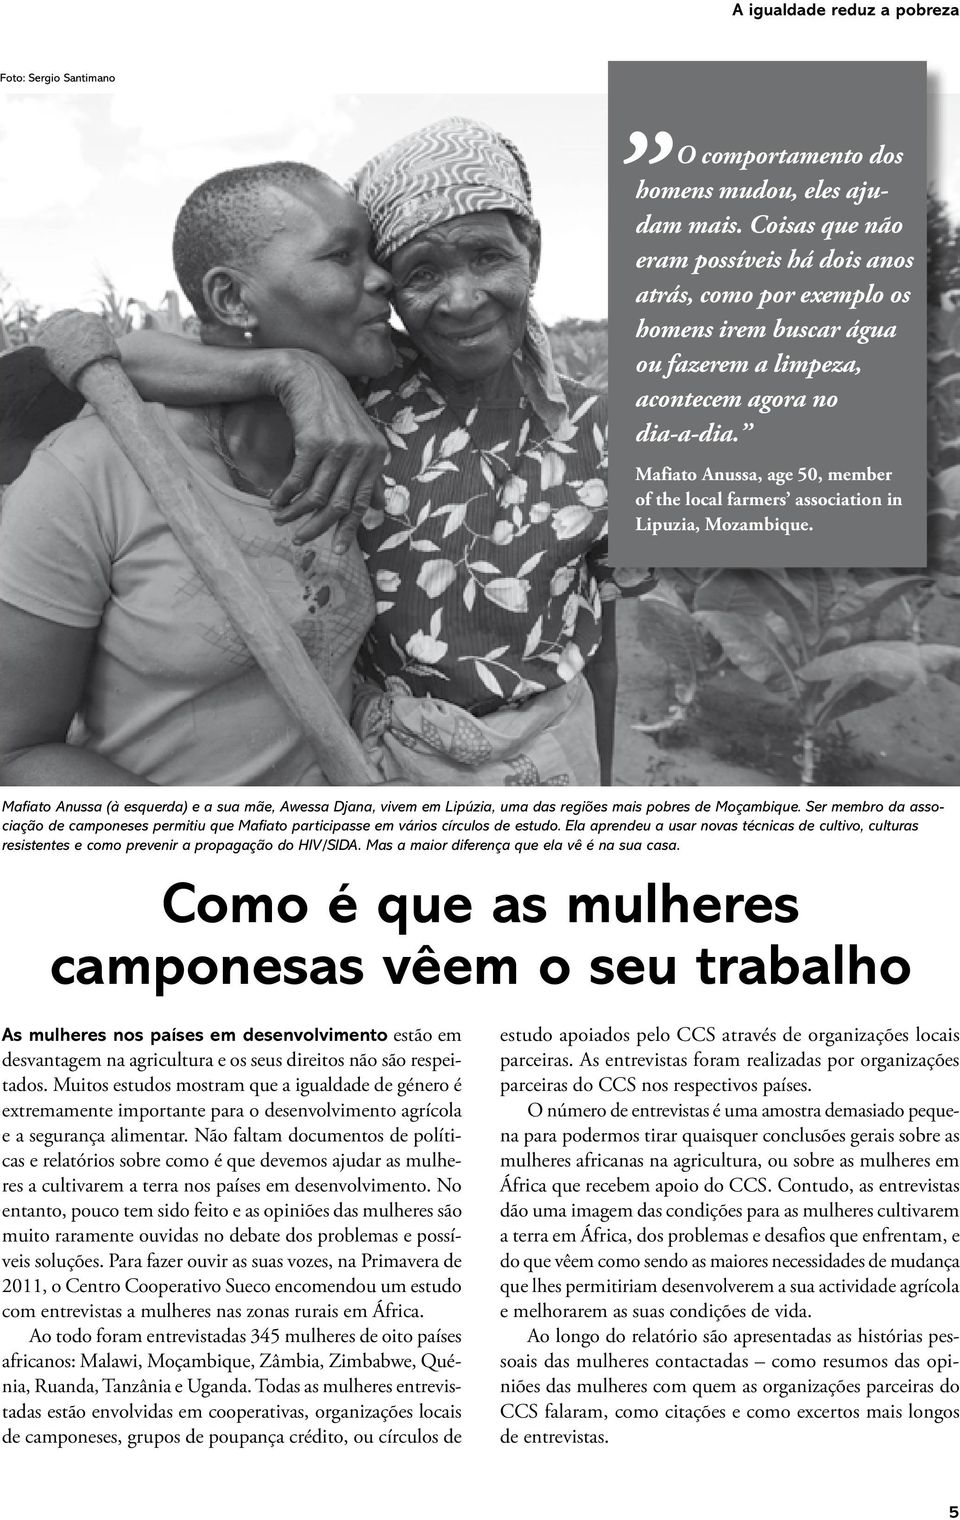 Mafiato Anussa, age 50, member of the local farmers association in Lipuzia, Mozambique.